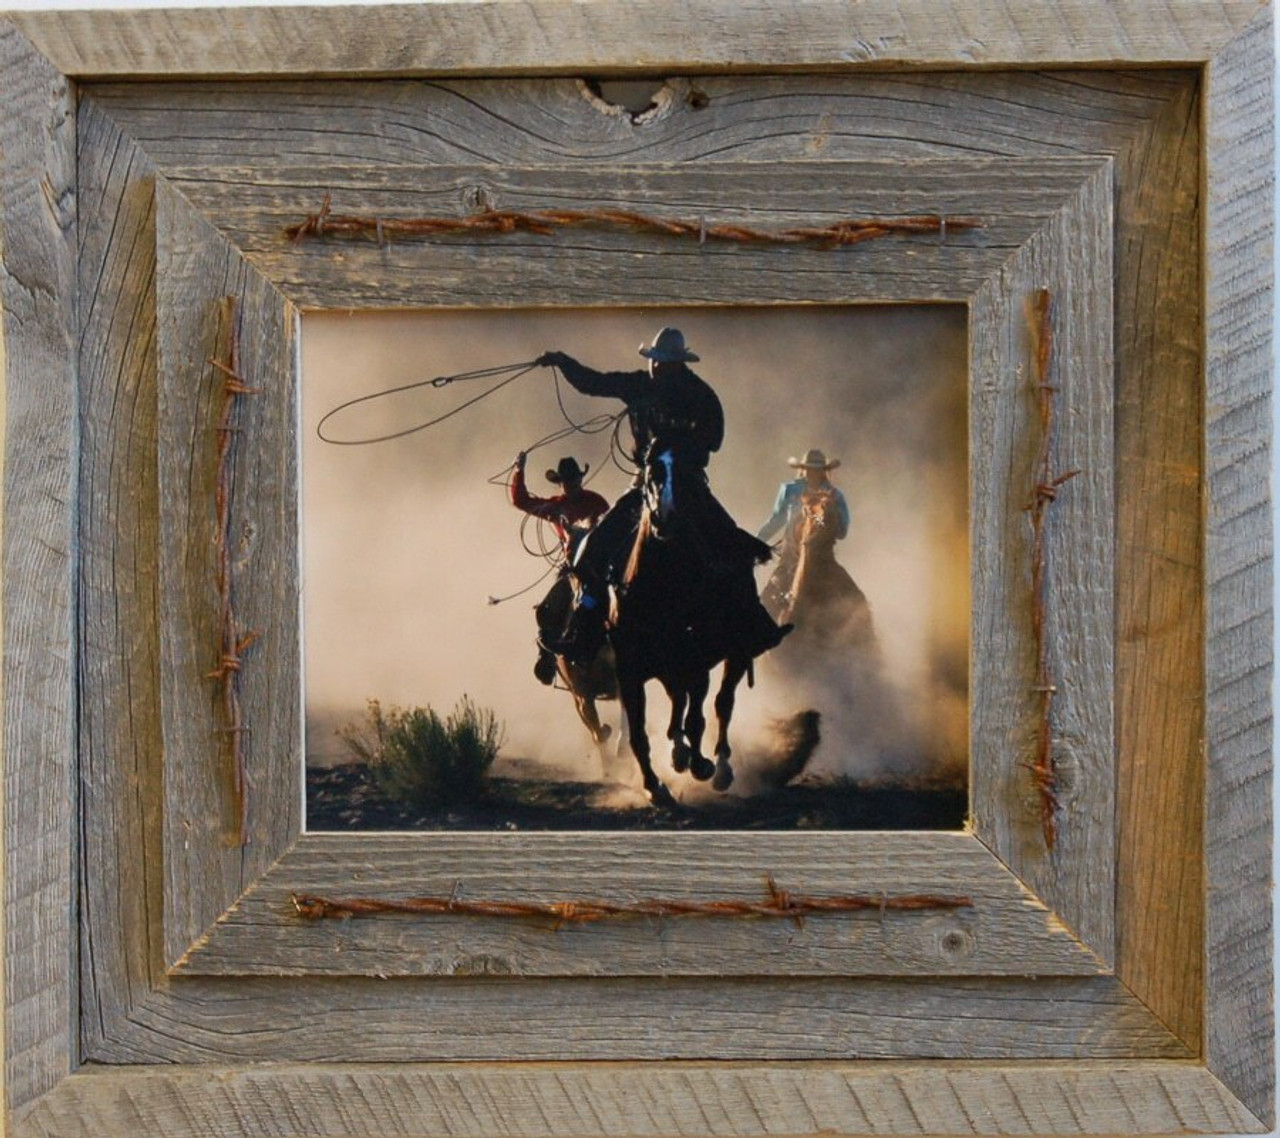 Western Barnwood Picture Frame 16x20 Reclaimed Wood